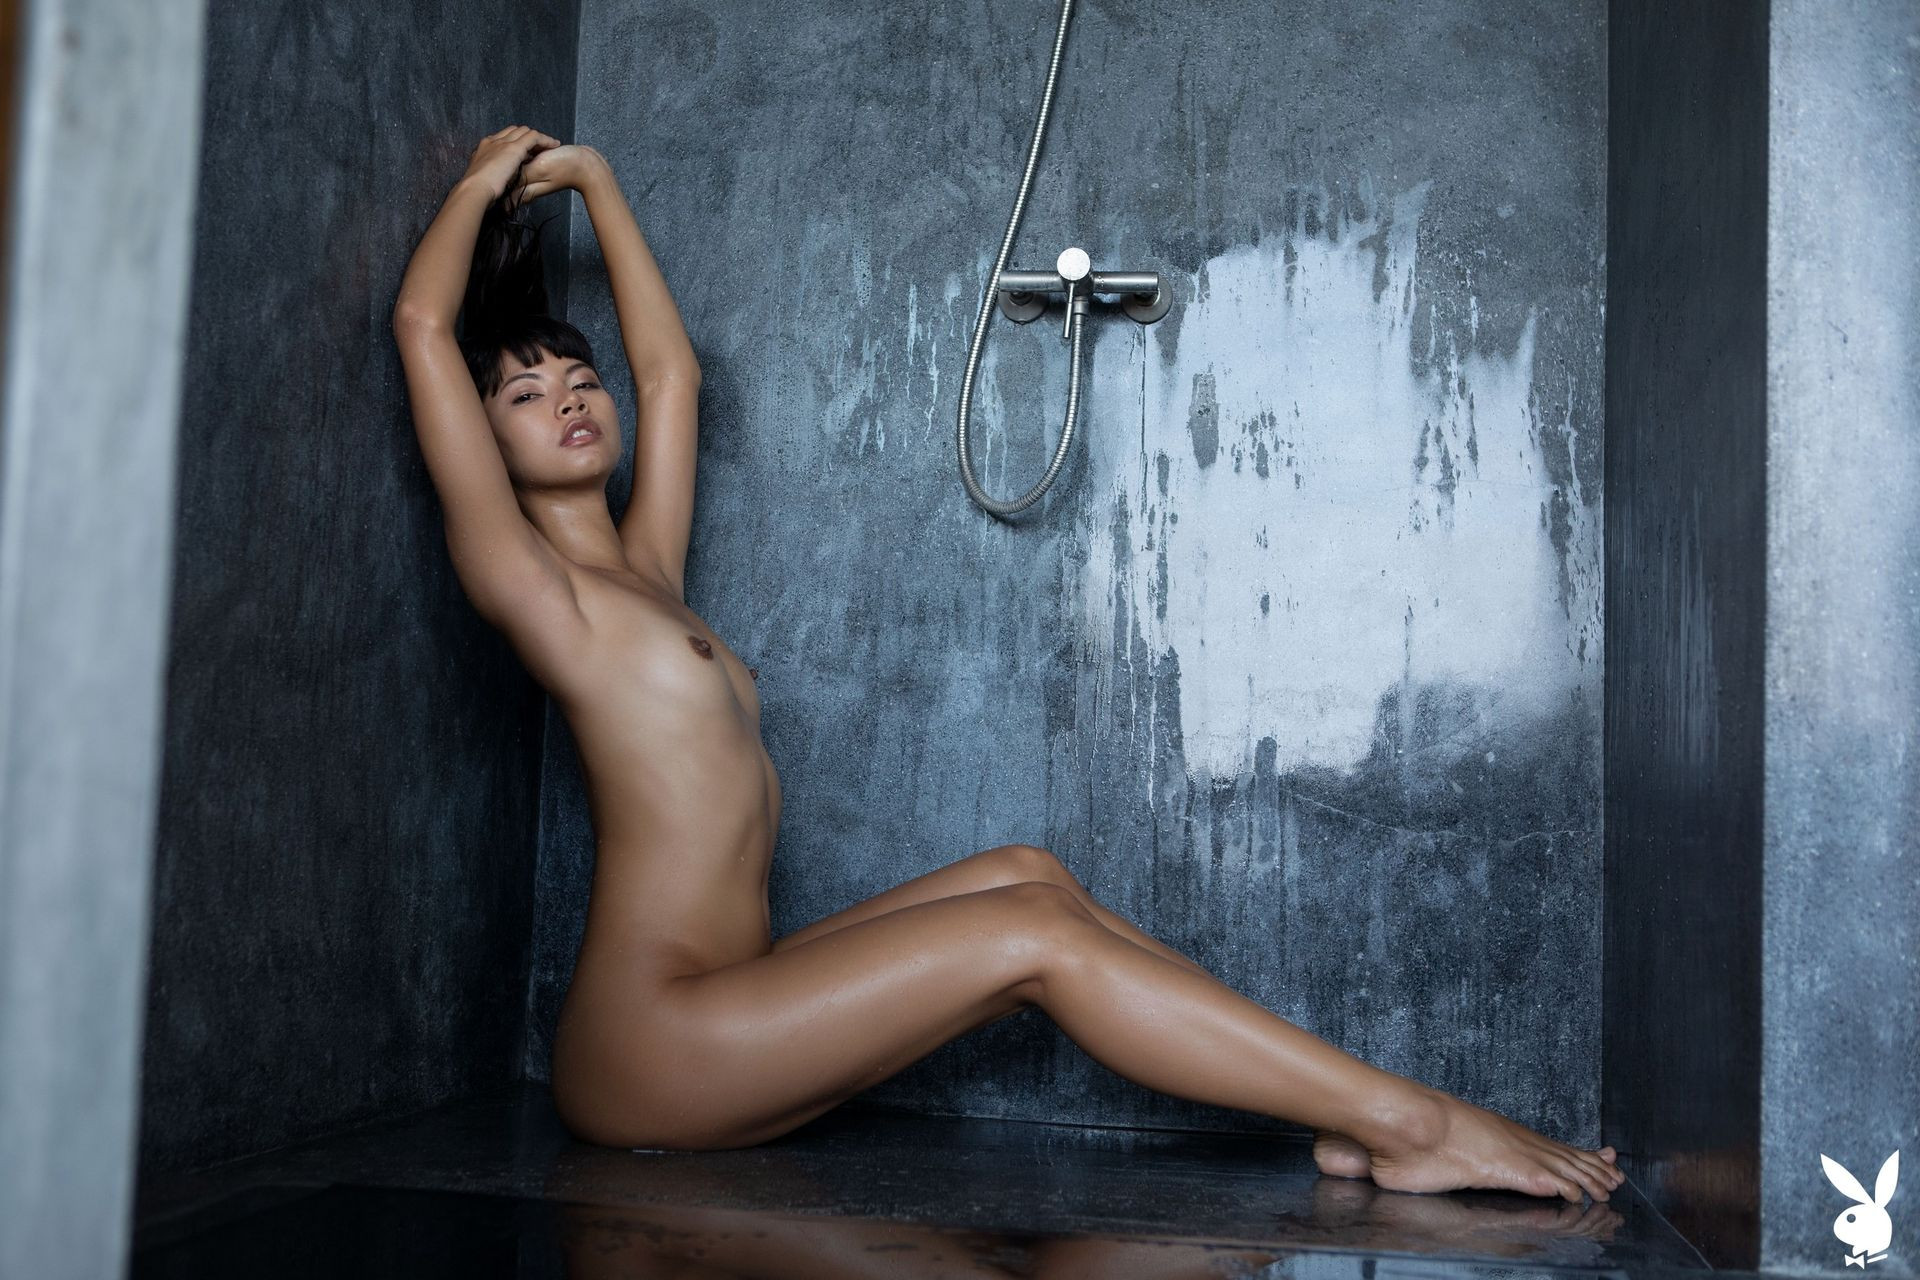 Cara Pin Nude Soft Shower thefappening.nu 12